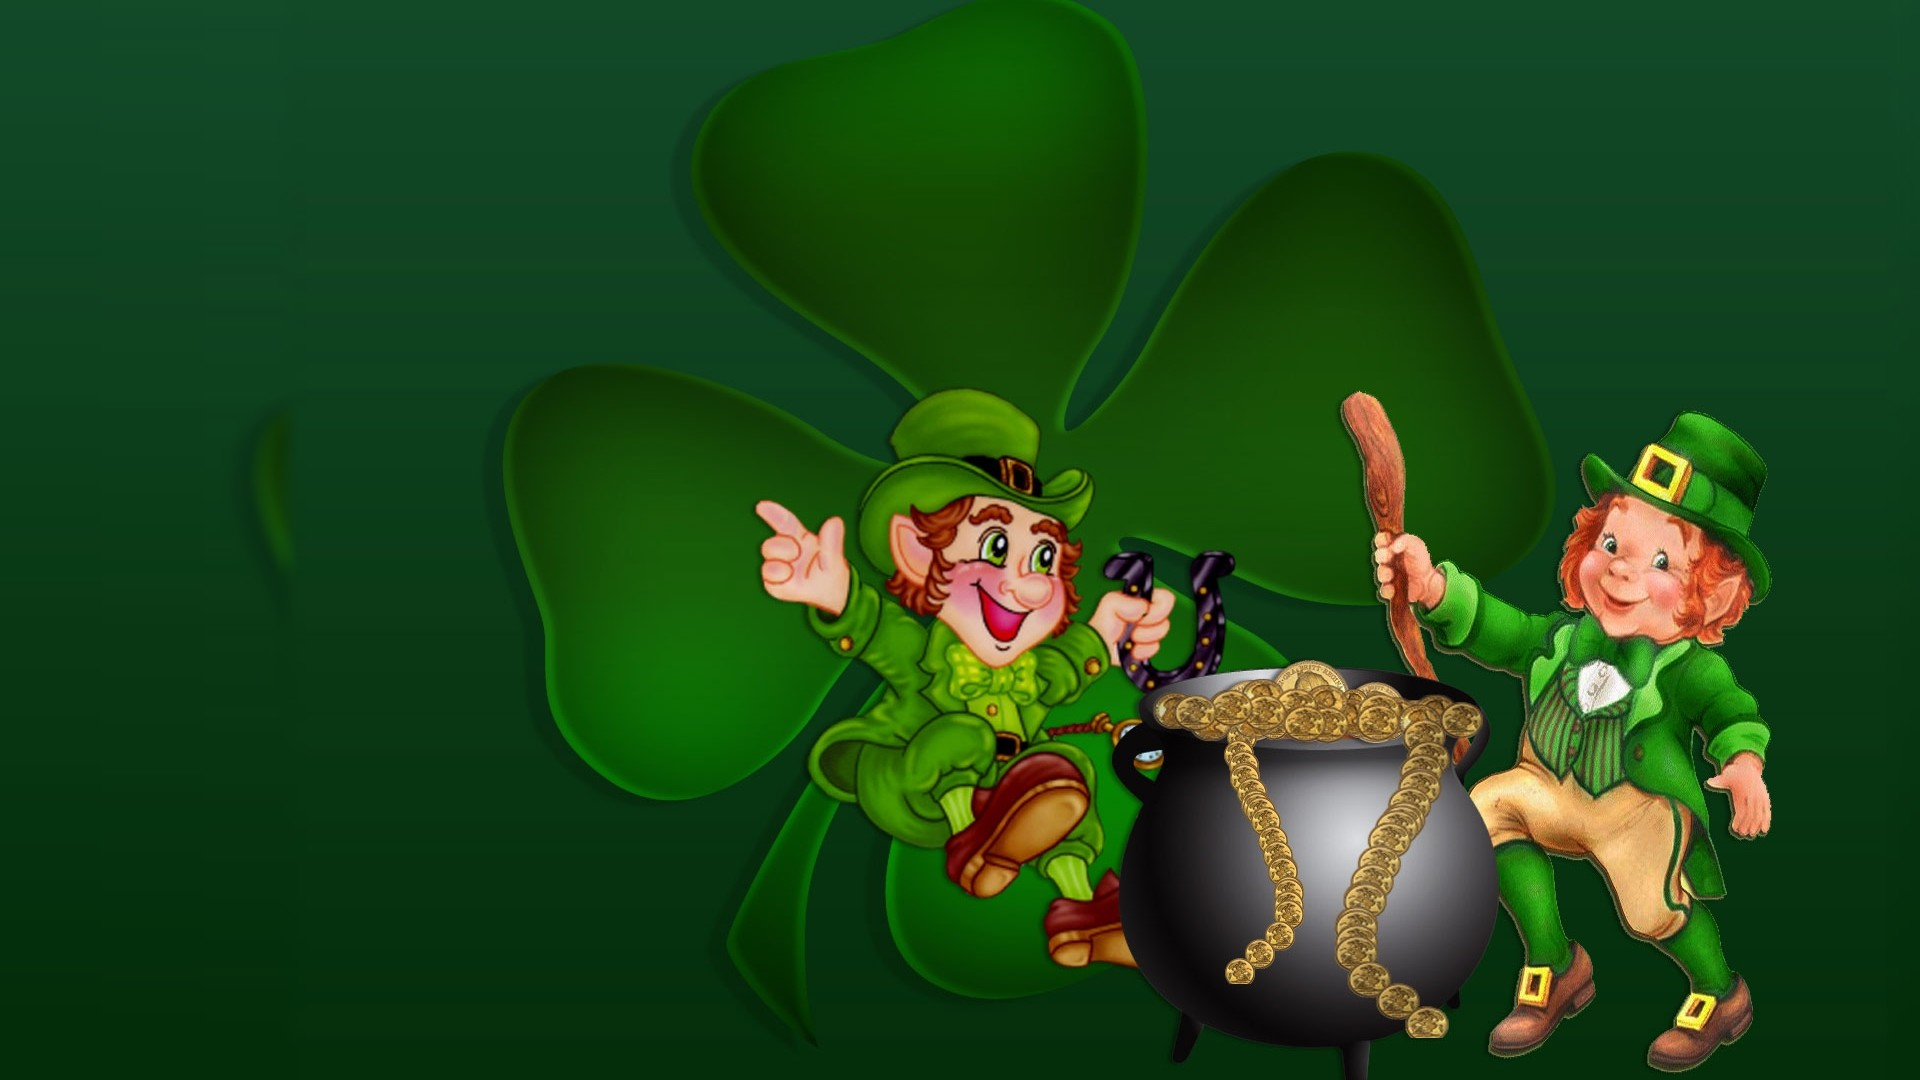 1920x1080 St. Patrick's Day Wallpaper Desktop...Wallpaper Safari